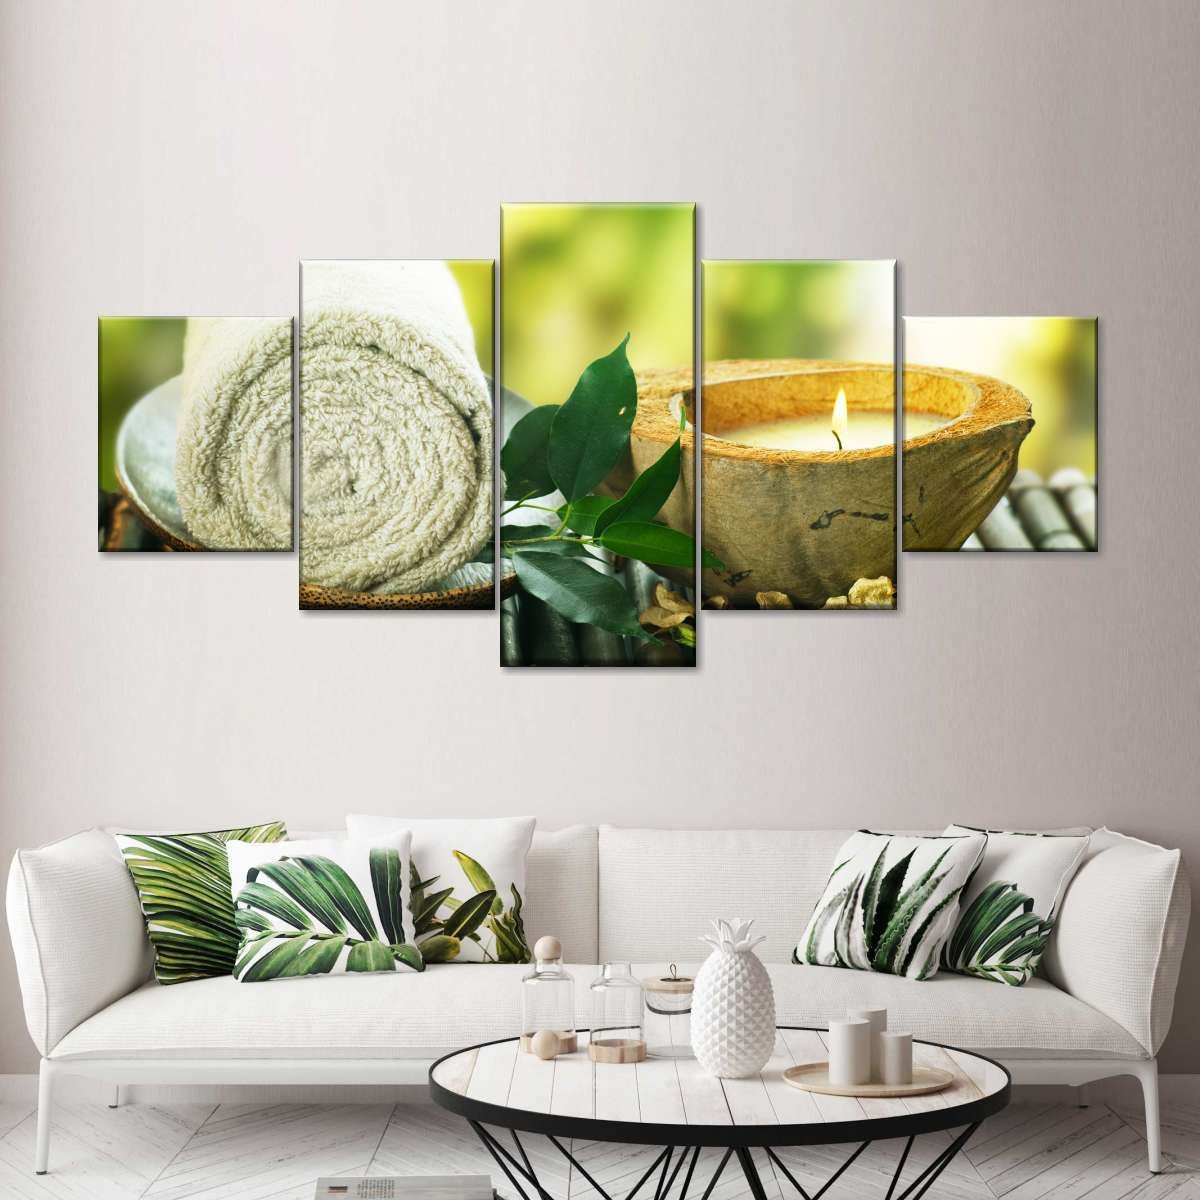 Serenity Multi Panel Canvas Wall Art Custom Wall Art Massage Room Decor Decor